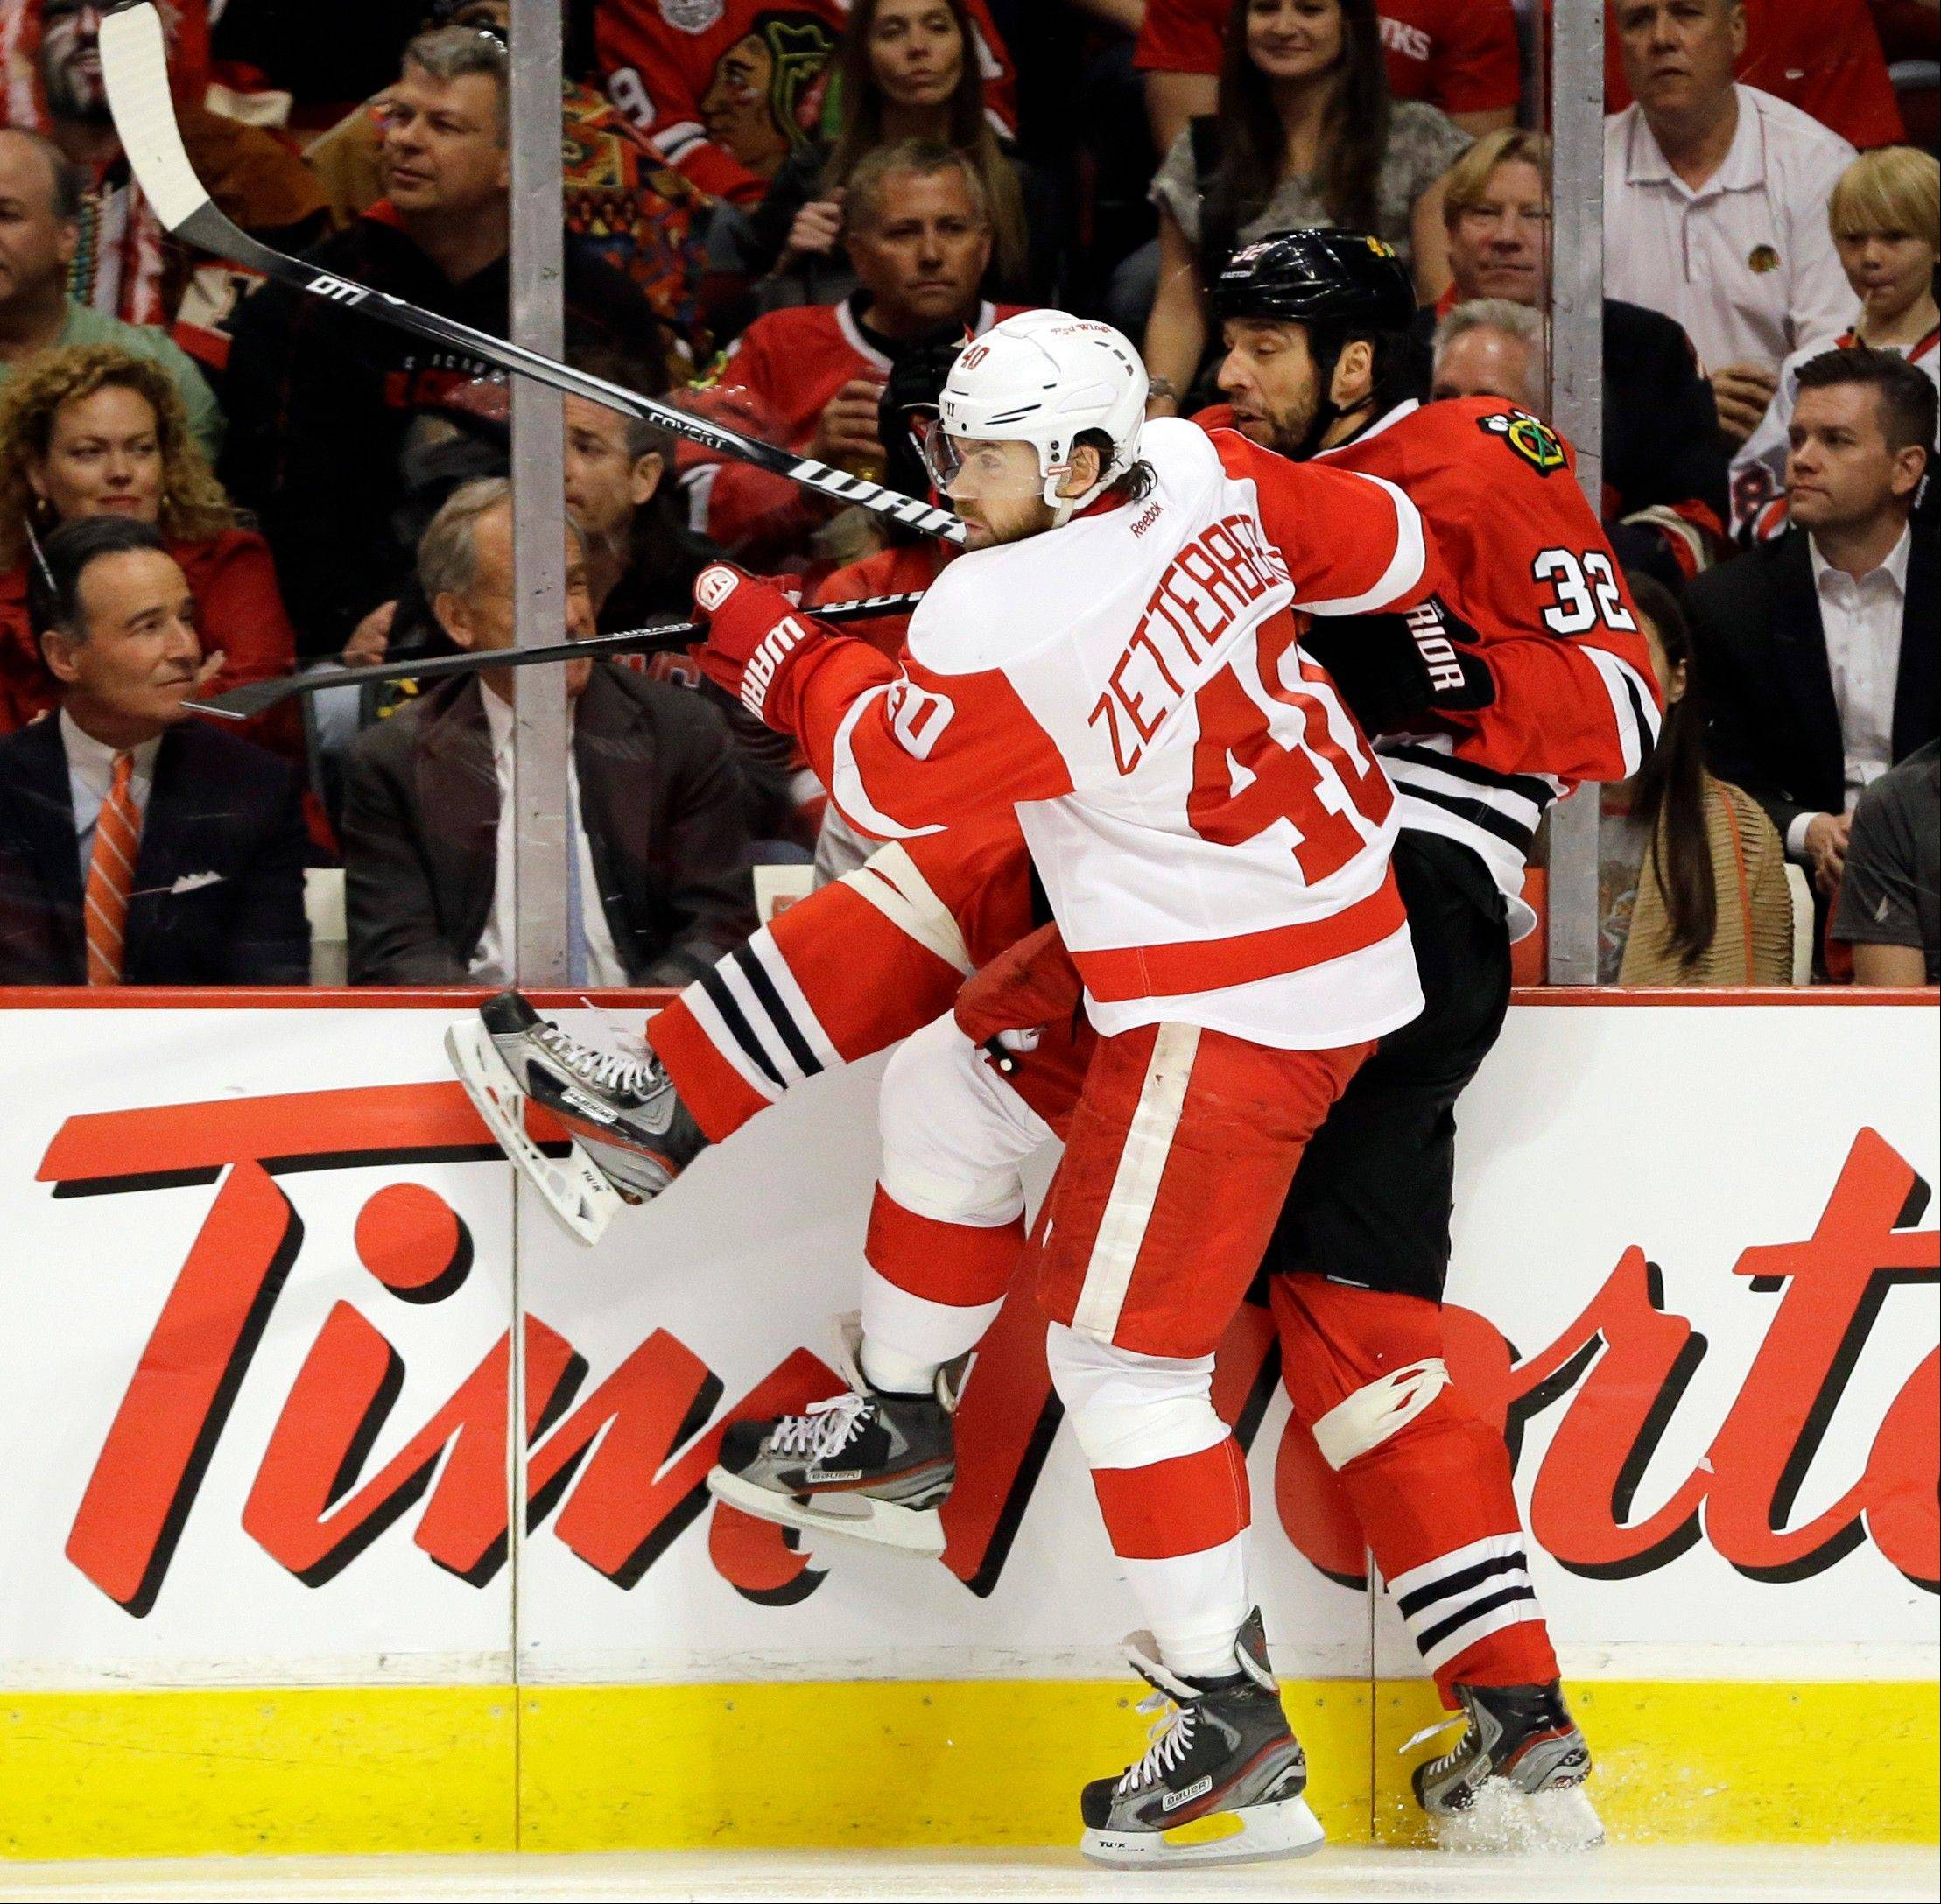 The Hawks' Michal Rozsival (32) is checked by Detroit Red Wings' Henrik Zetterberg (40) during the first period of Game 1 of an NHL hockey playoffs Western Conference semifinal in Chicago, Wednesday, May 15, 2013.